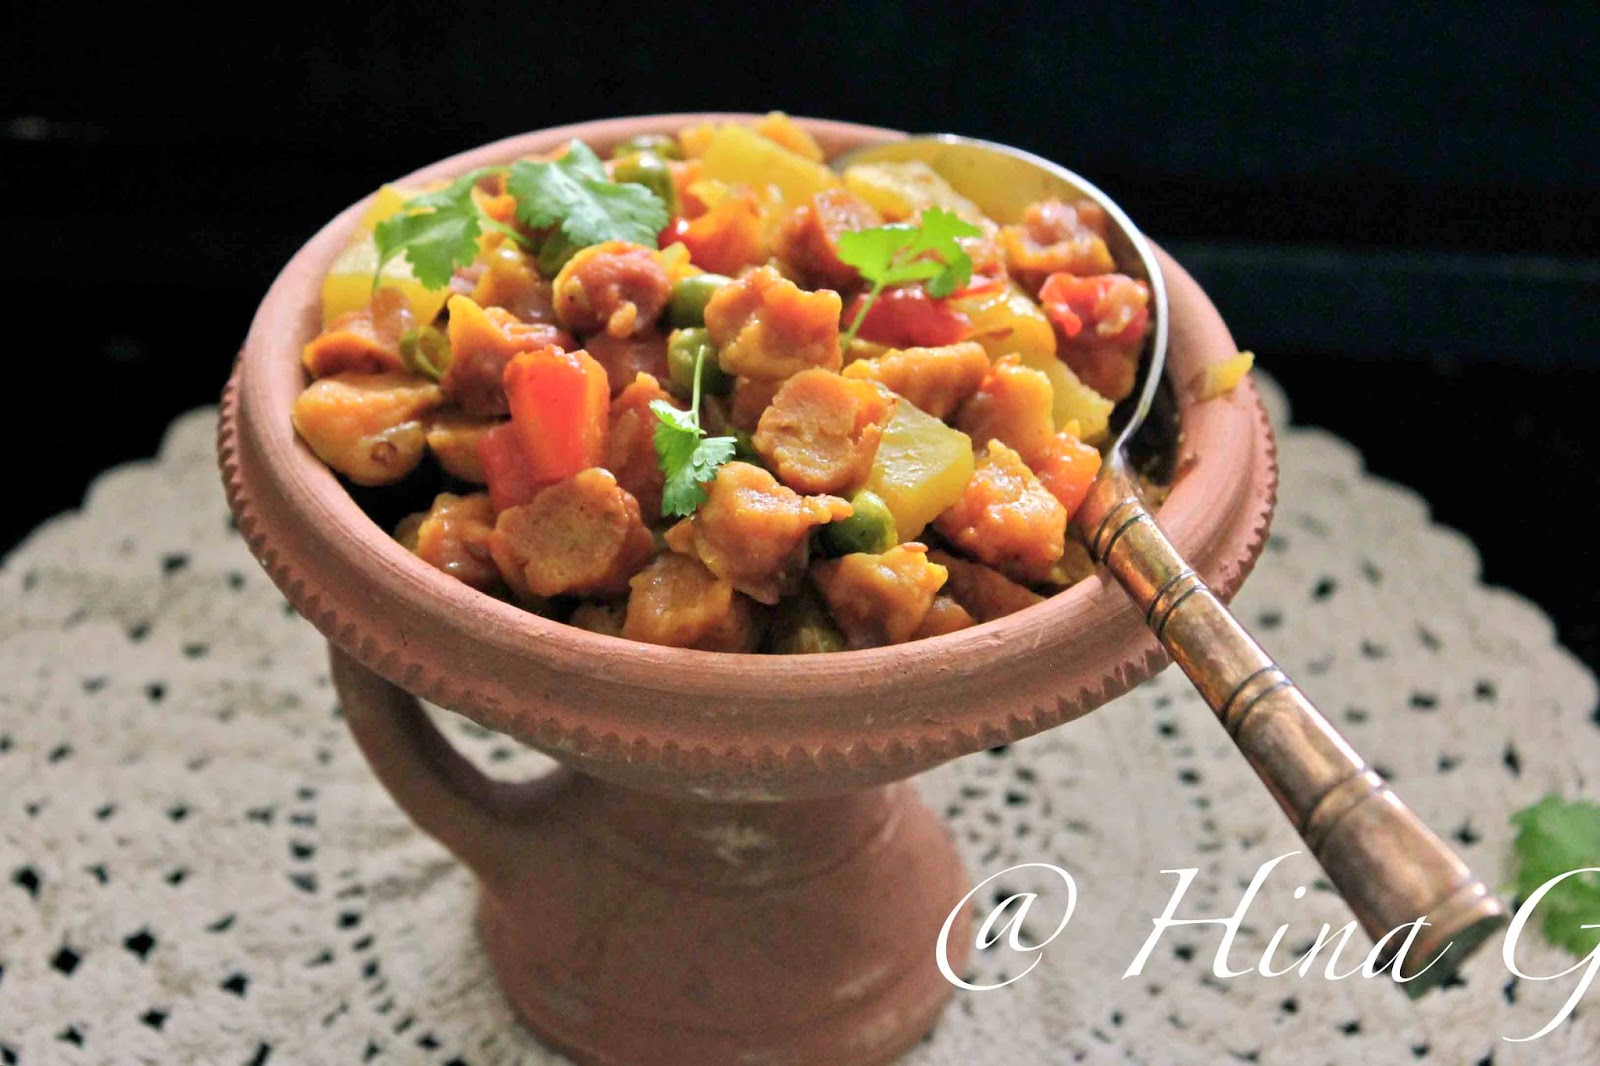 Mungodi or mung wadi are tiny little lentil drops made out of yellow moong dal. Find how to make mungodi curry recipe in Kumaoni style